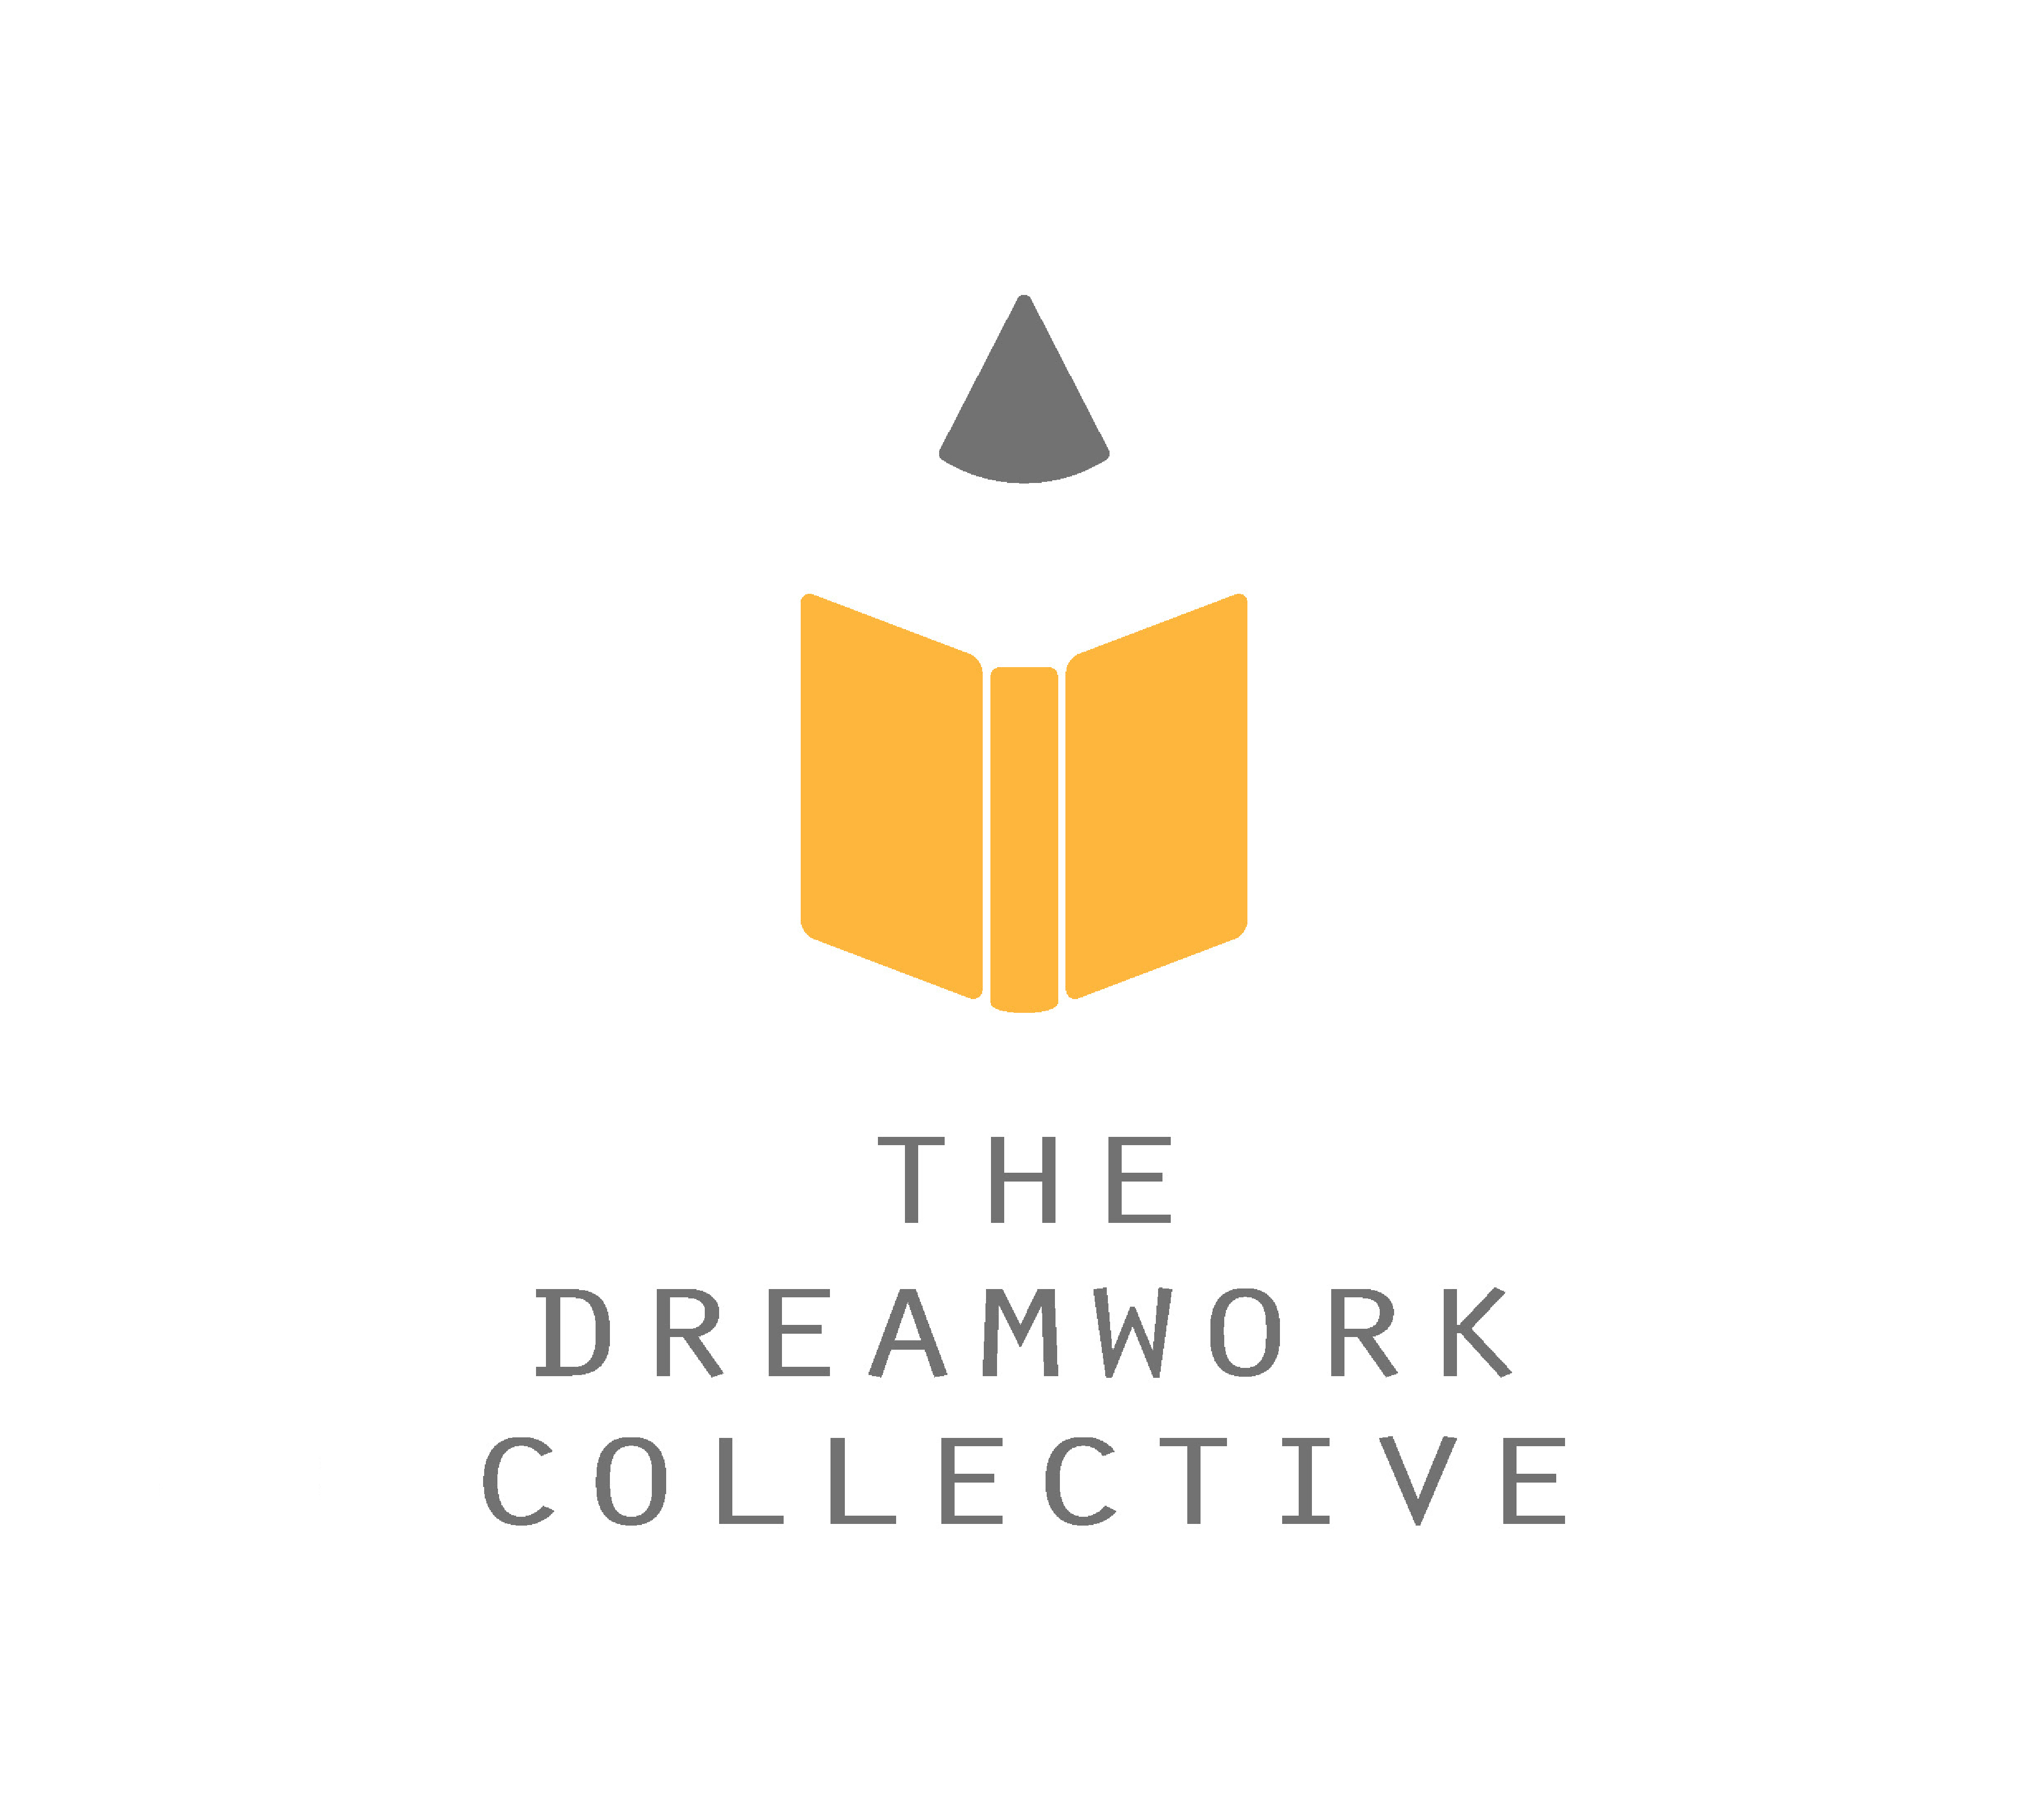 The Dreamwork Collective LLC